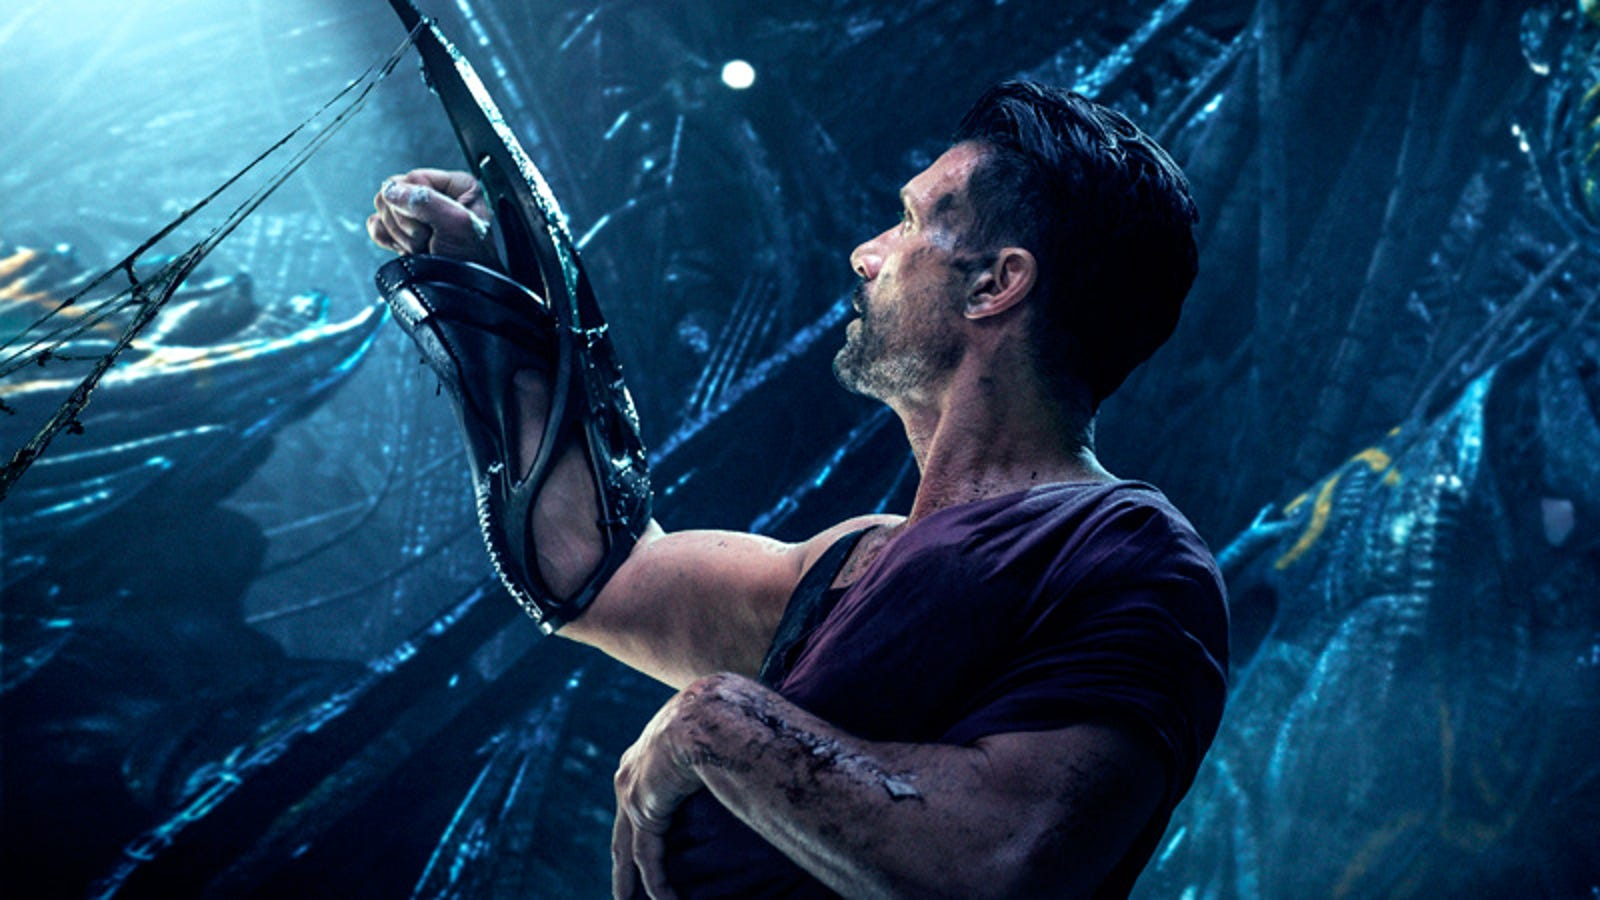 Another Trailer for Beyond Skyline Makes the Movie Look Totally Badass